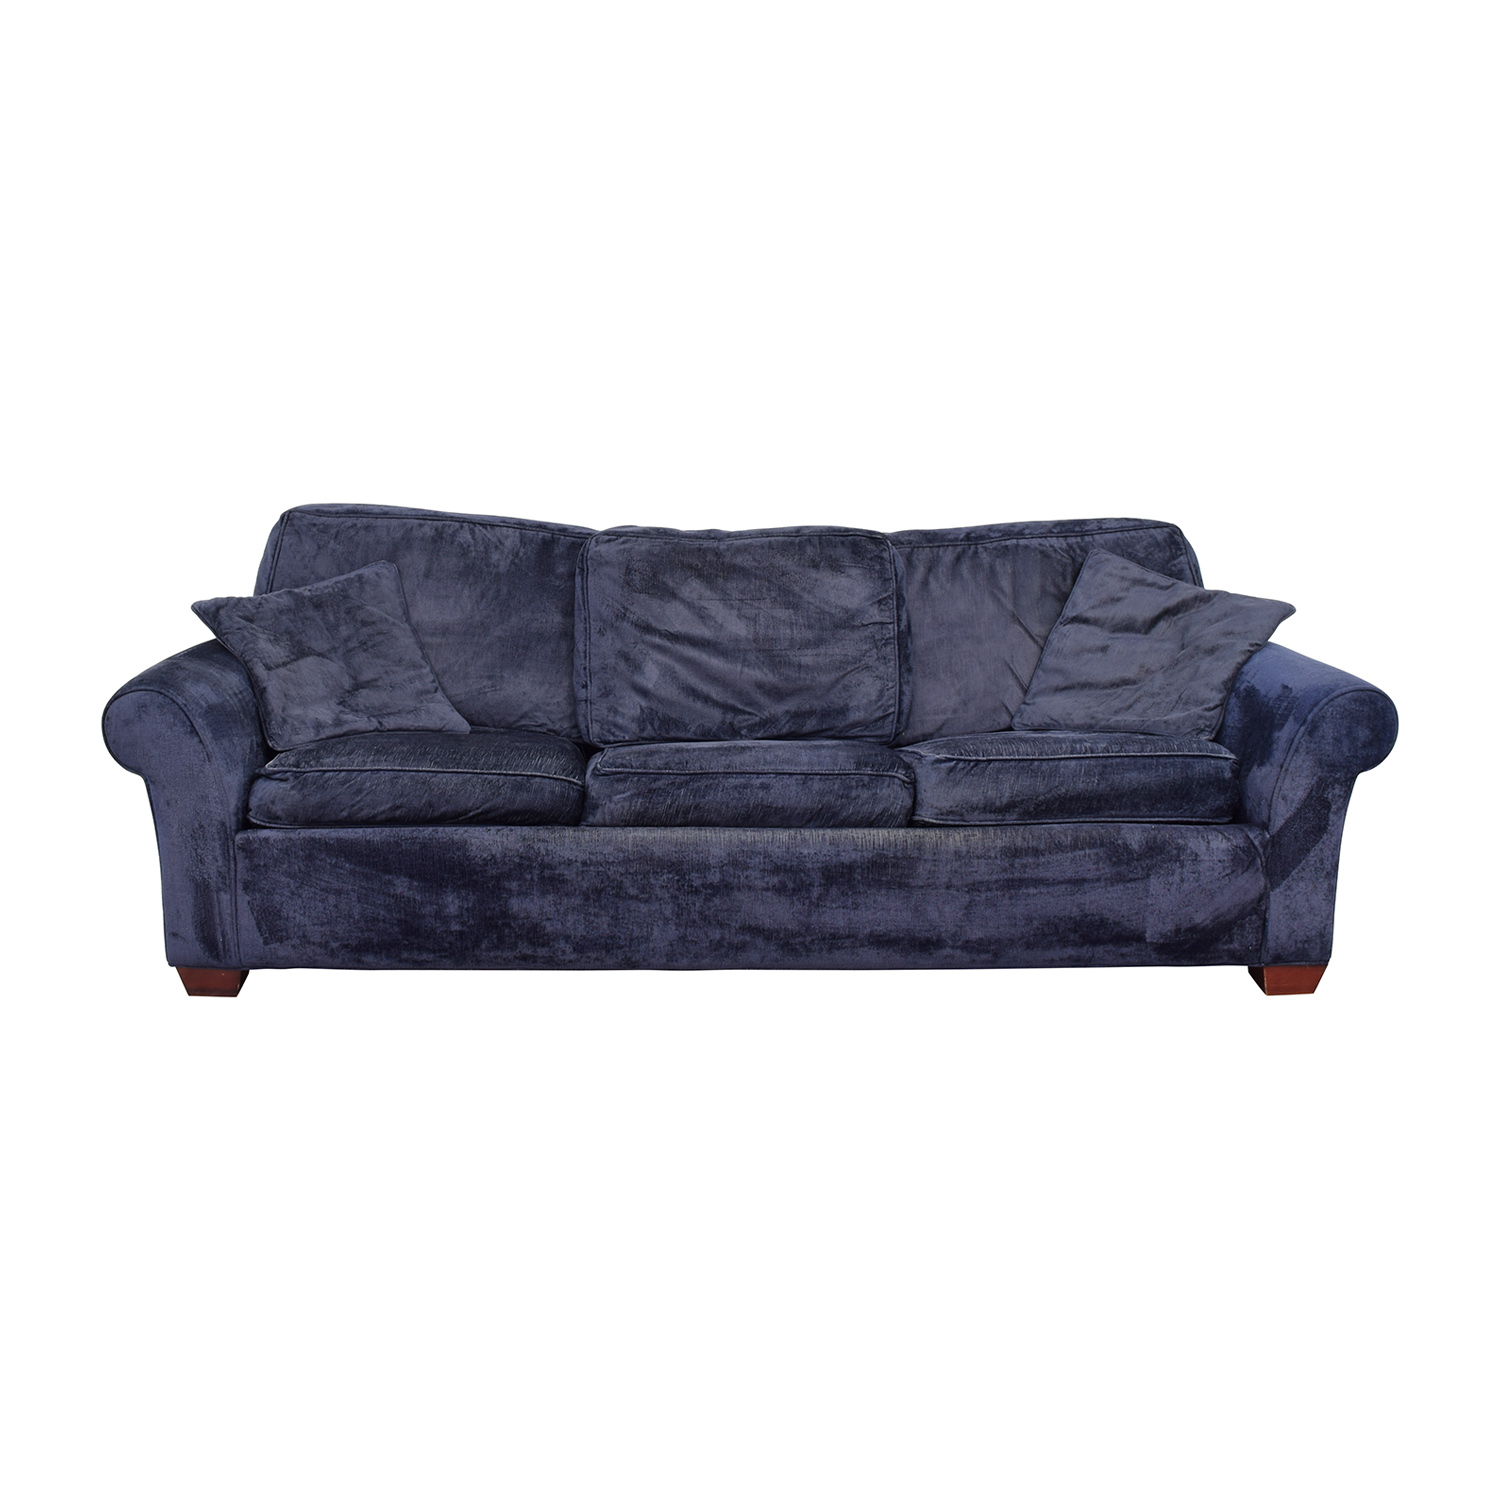 Crate & Barrel Crate & Barrel Sleeper Sofa Sofas